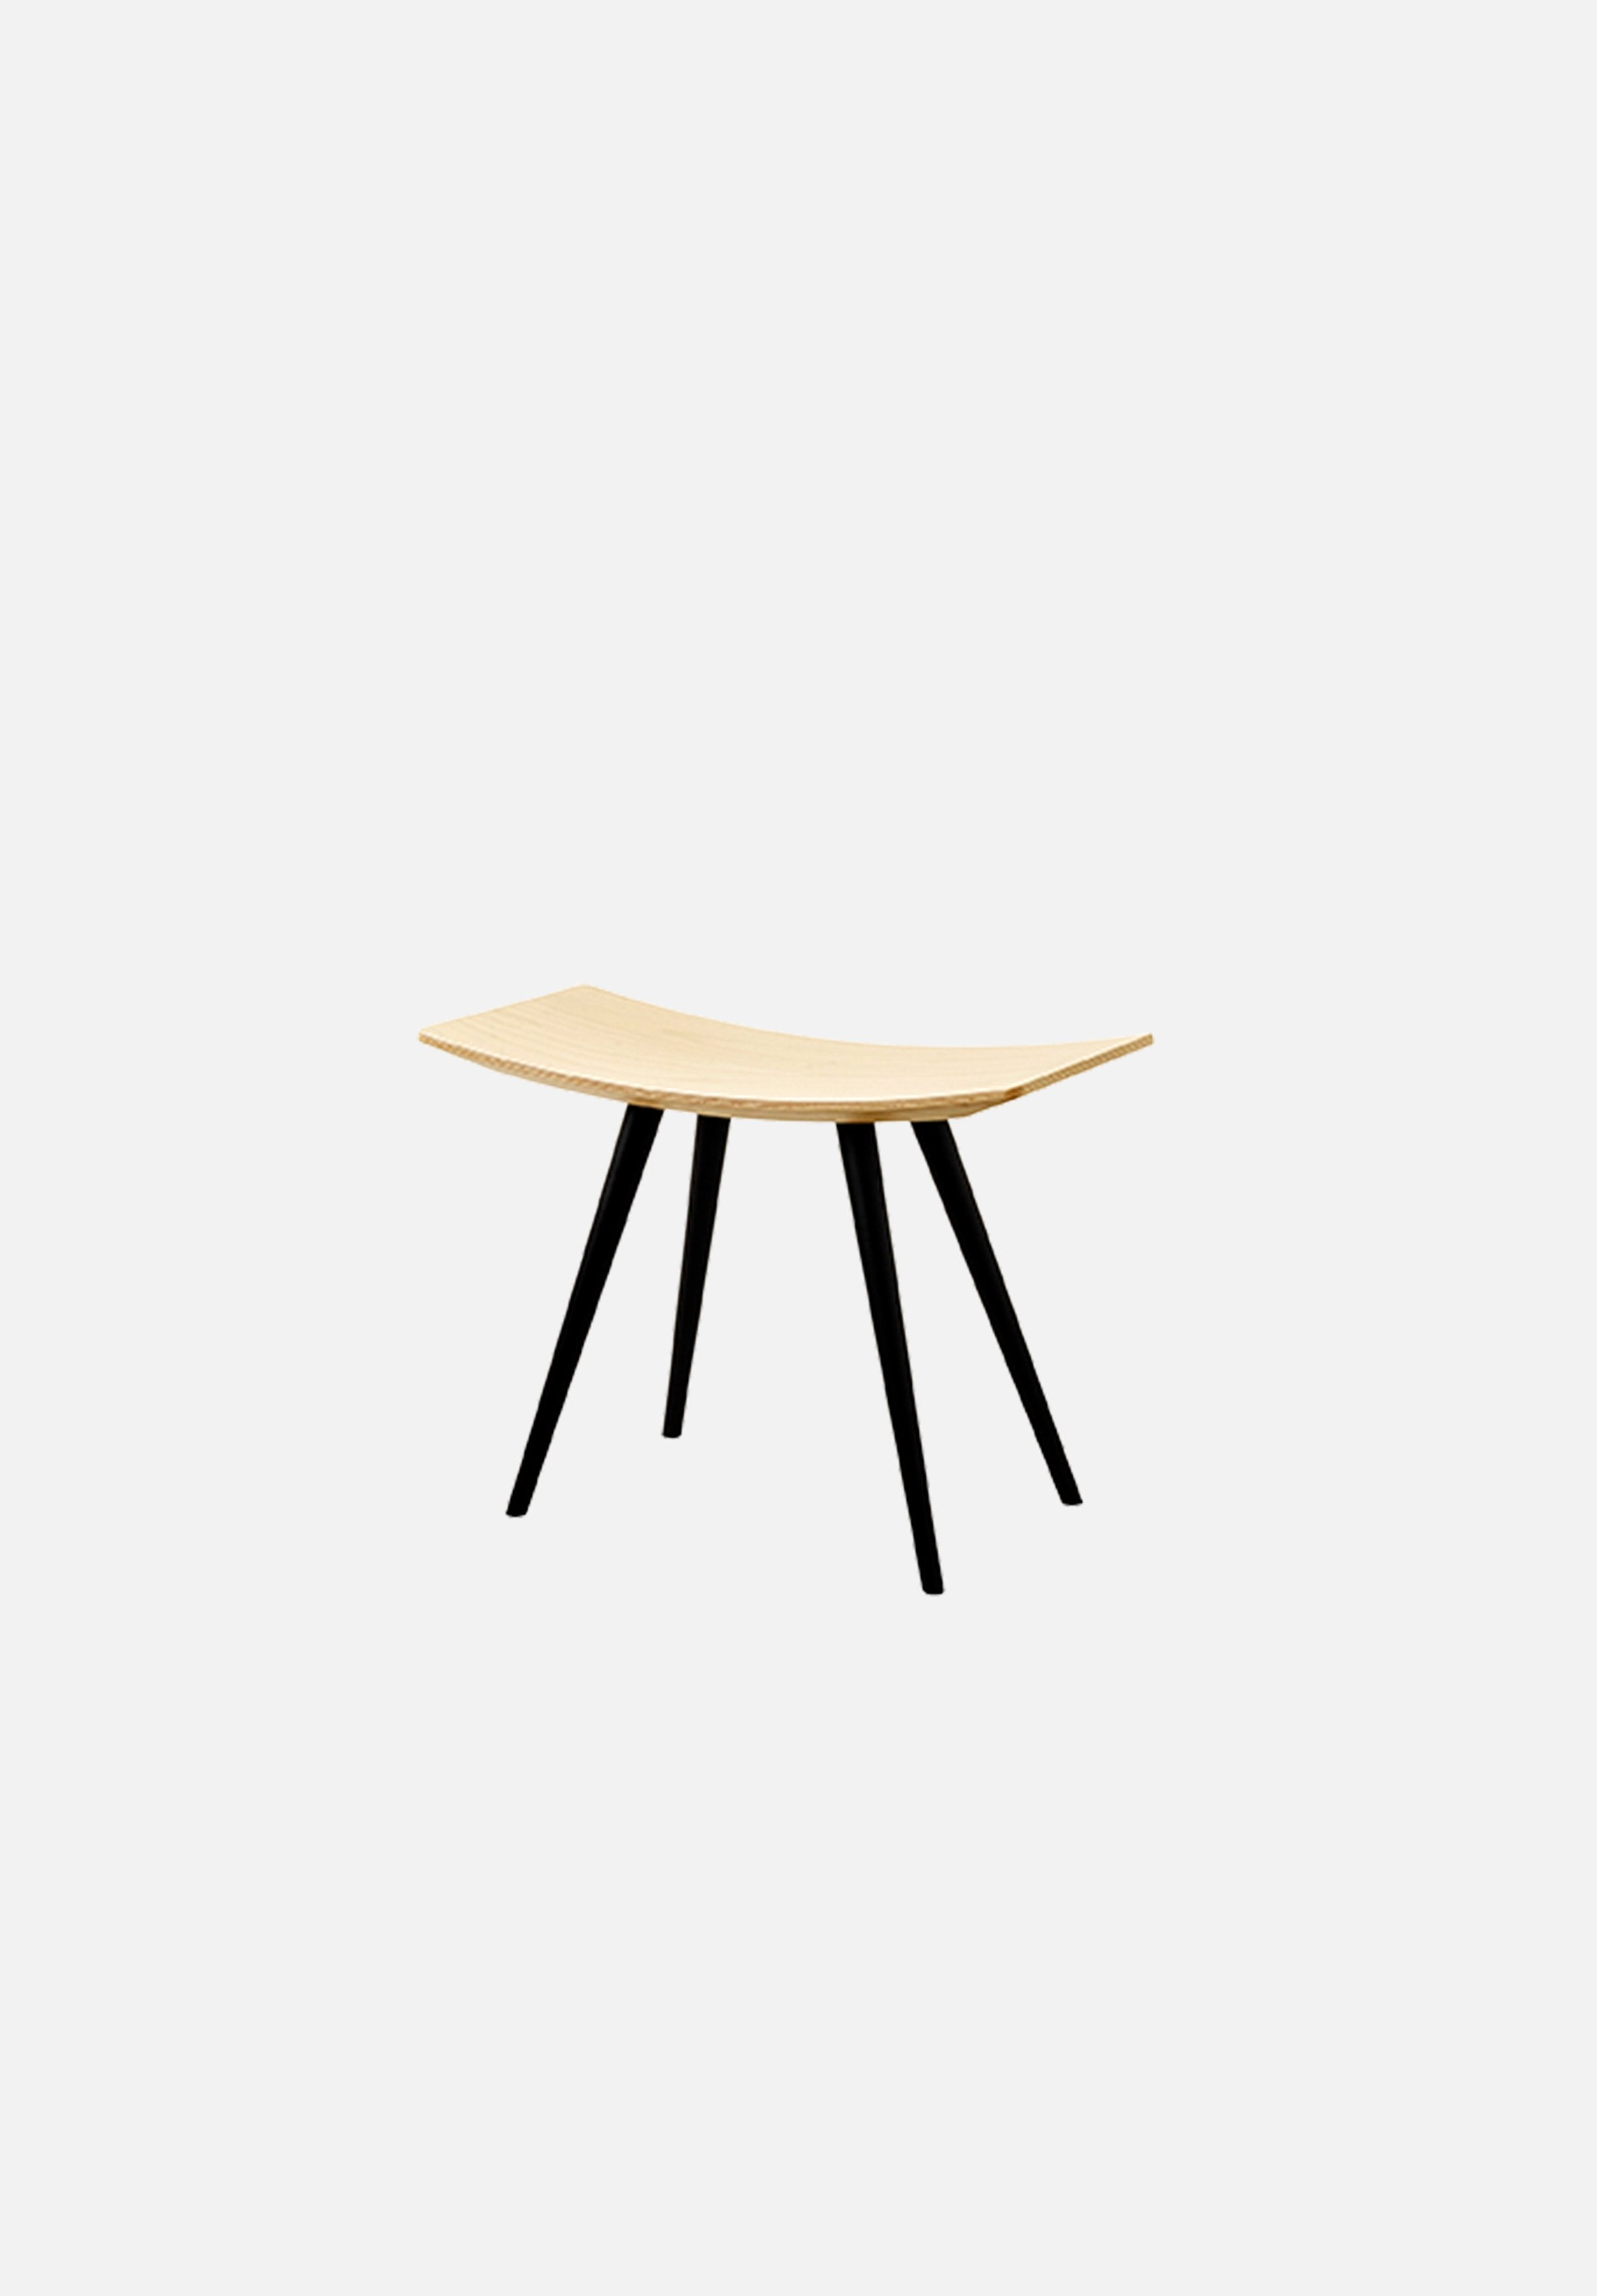 J154 Mikado Stool Mikado FDB Møbler black Danish Design Furniture Chairs Average Toronto Canada Design Store